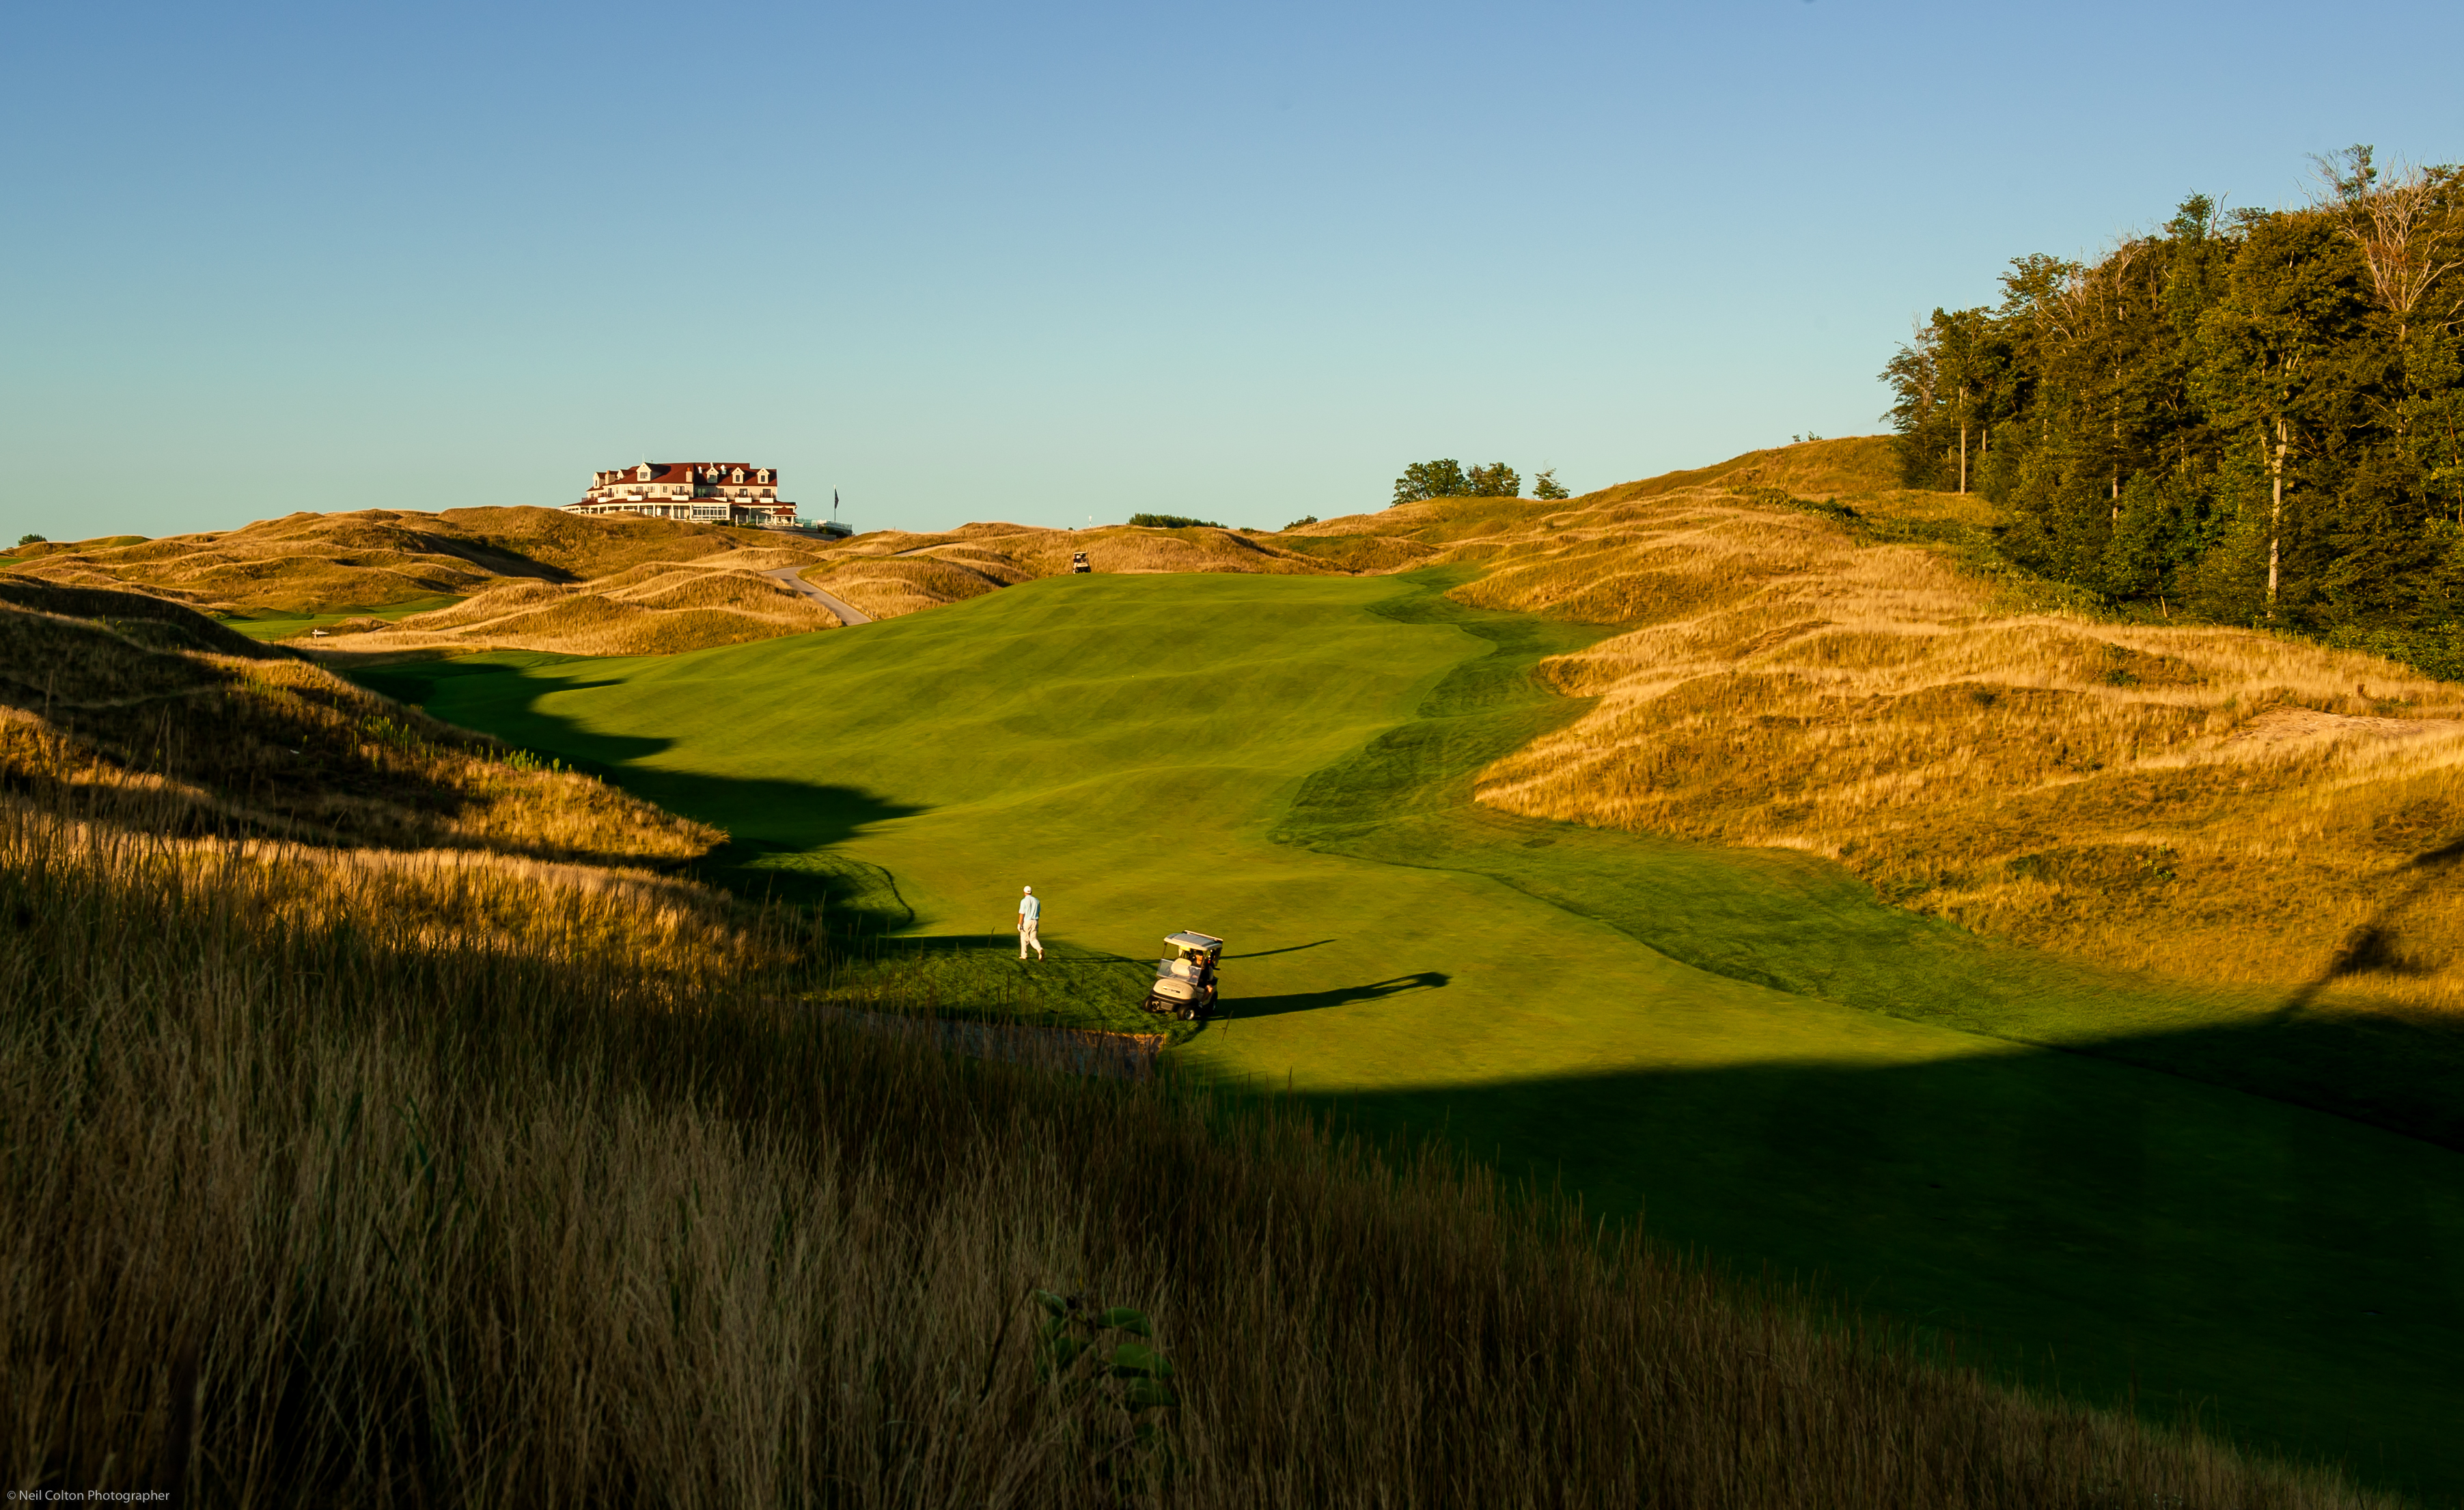 Neil-Colton-lifestyle-photographer-arcadia-bluffs-gc-17